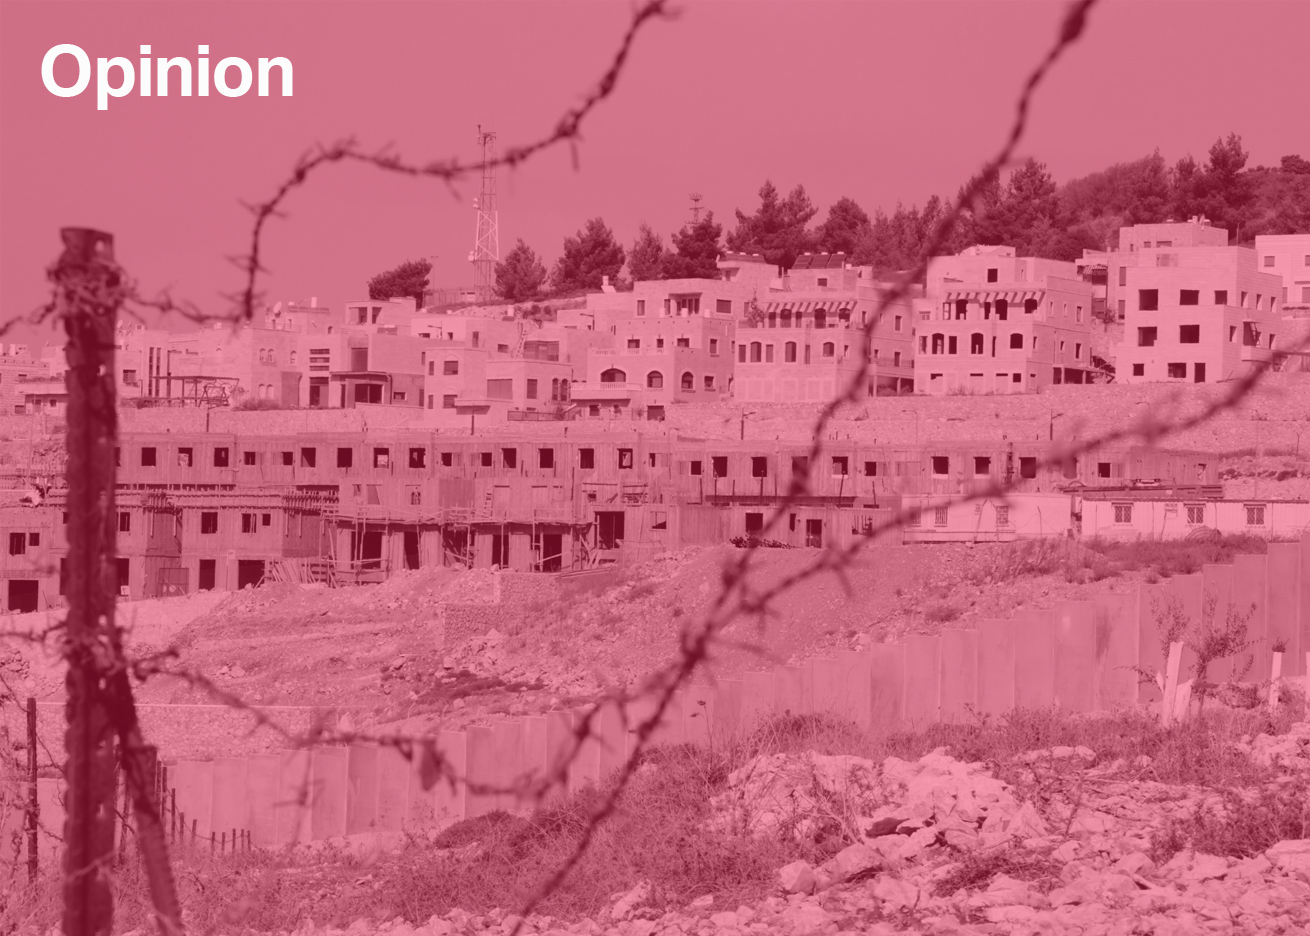 Israel/Palestine conflict of the family home mundane architecture opinion by Eleanor Jolliffe